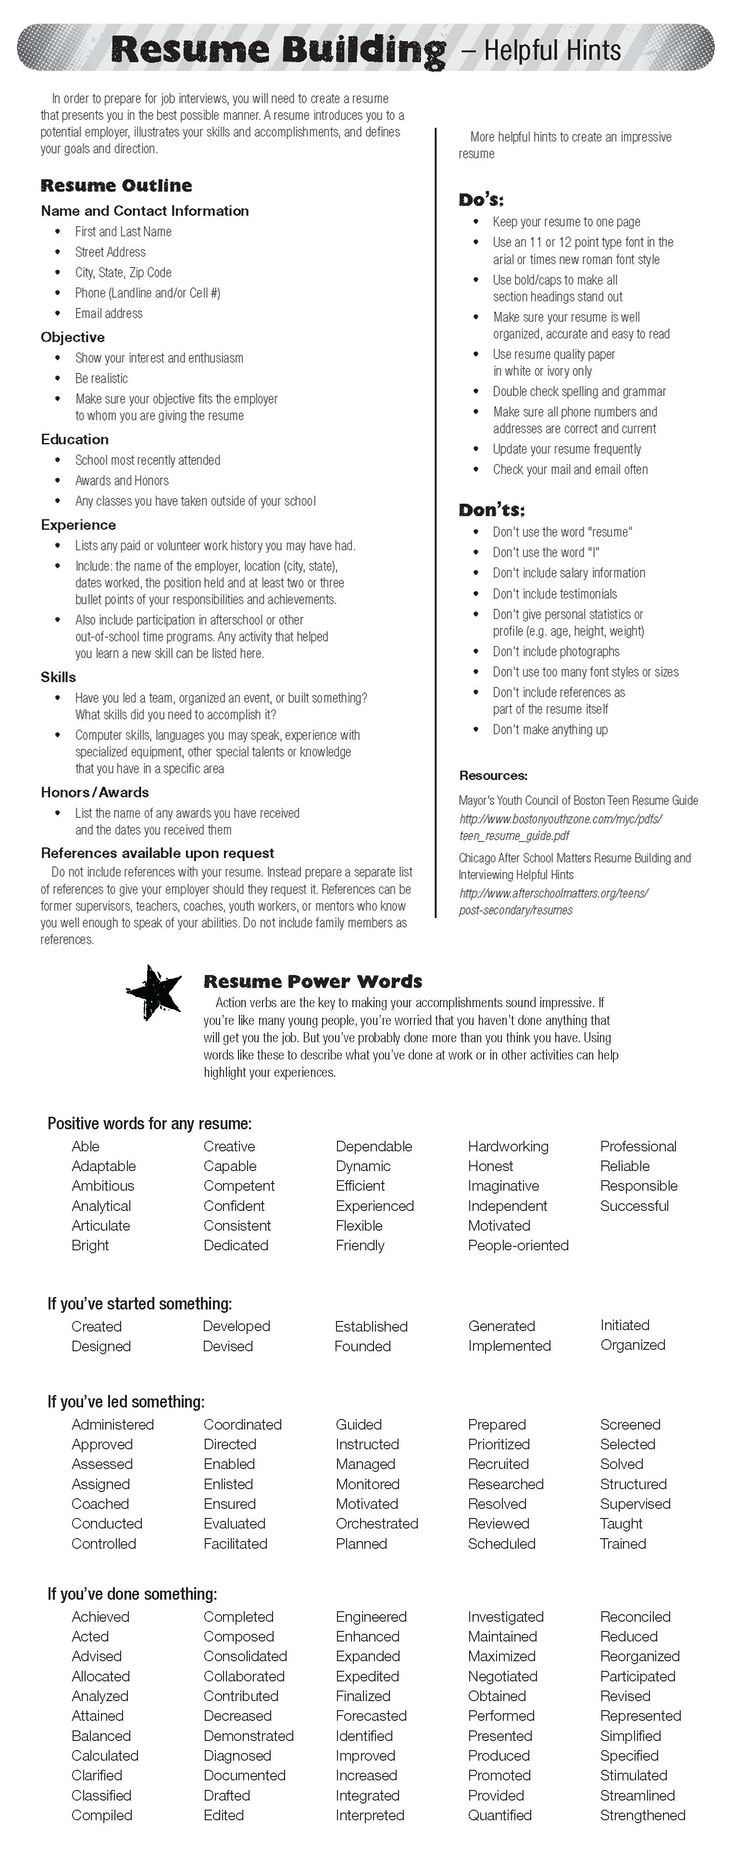 Opposenewapstandardsus  Nice  Ideas About Resume On Pinterest  Cv Format Resume  With Luxury Check Out Todays Resume Building Tips Resume Resumepowerwords With Cute High School Resume No Experience Also Resume Magna Cum Laude In Addition Accounting Specialist Resume And Military Resume Example As Well As Entry Level Chemist Resume Additionally Ssis Developer Resume From Pinterestcom With Opposenewapstandardsus  Luxury  Ideas About Resume On Pinterest  Cv Format Resume  With Cute Check Out Todays Resume Building Tips Resume Resumepowerwords And Nice High School Resume No Experience Also Resume Magna Cum Laude In Addition Accounting Specialist Resume From Pinterestcom